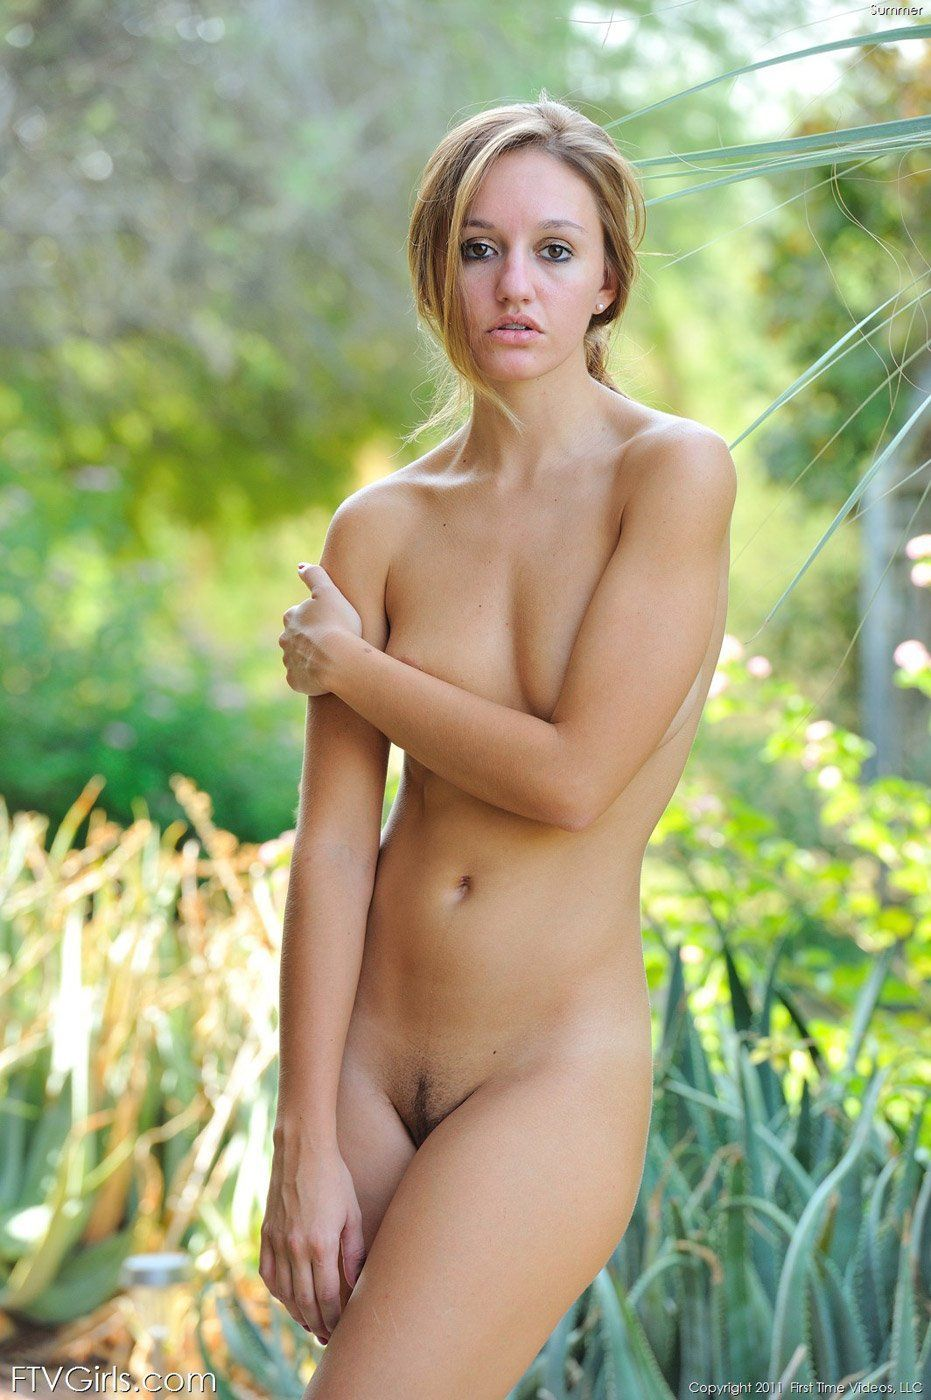 Very nice girls naked in outdoor